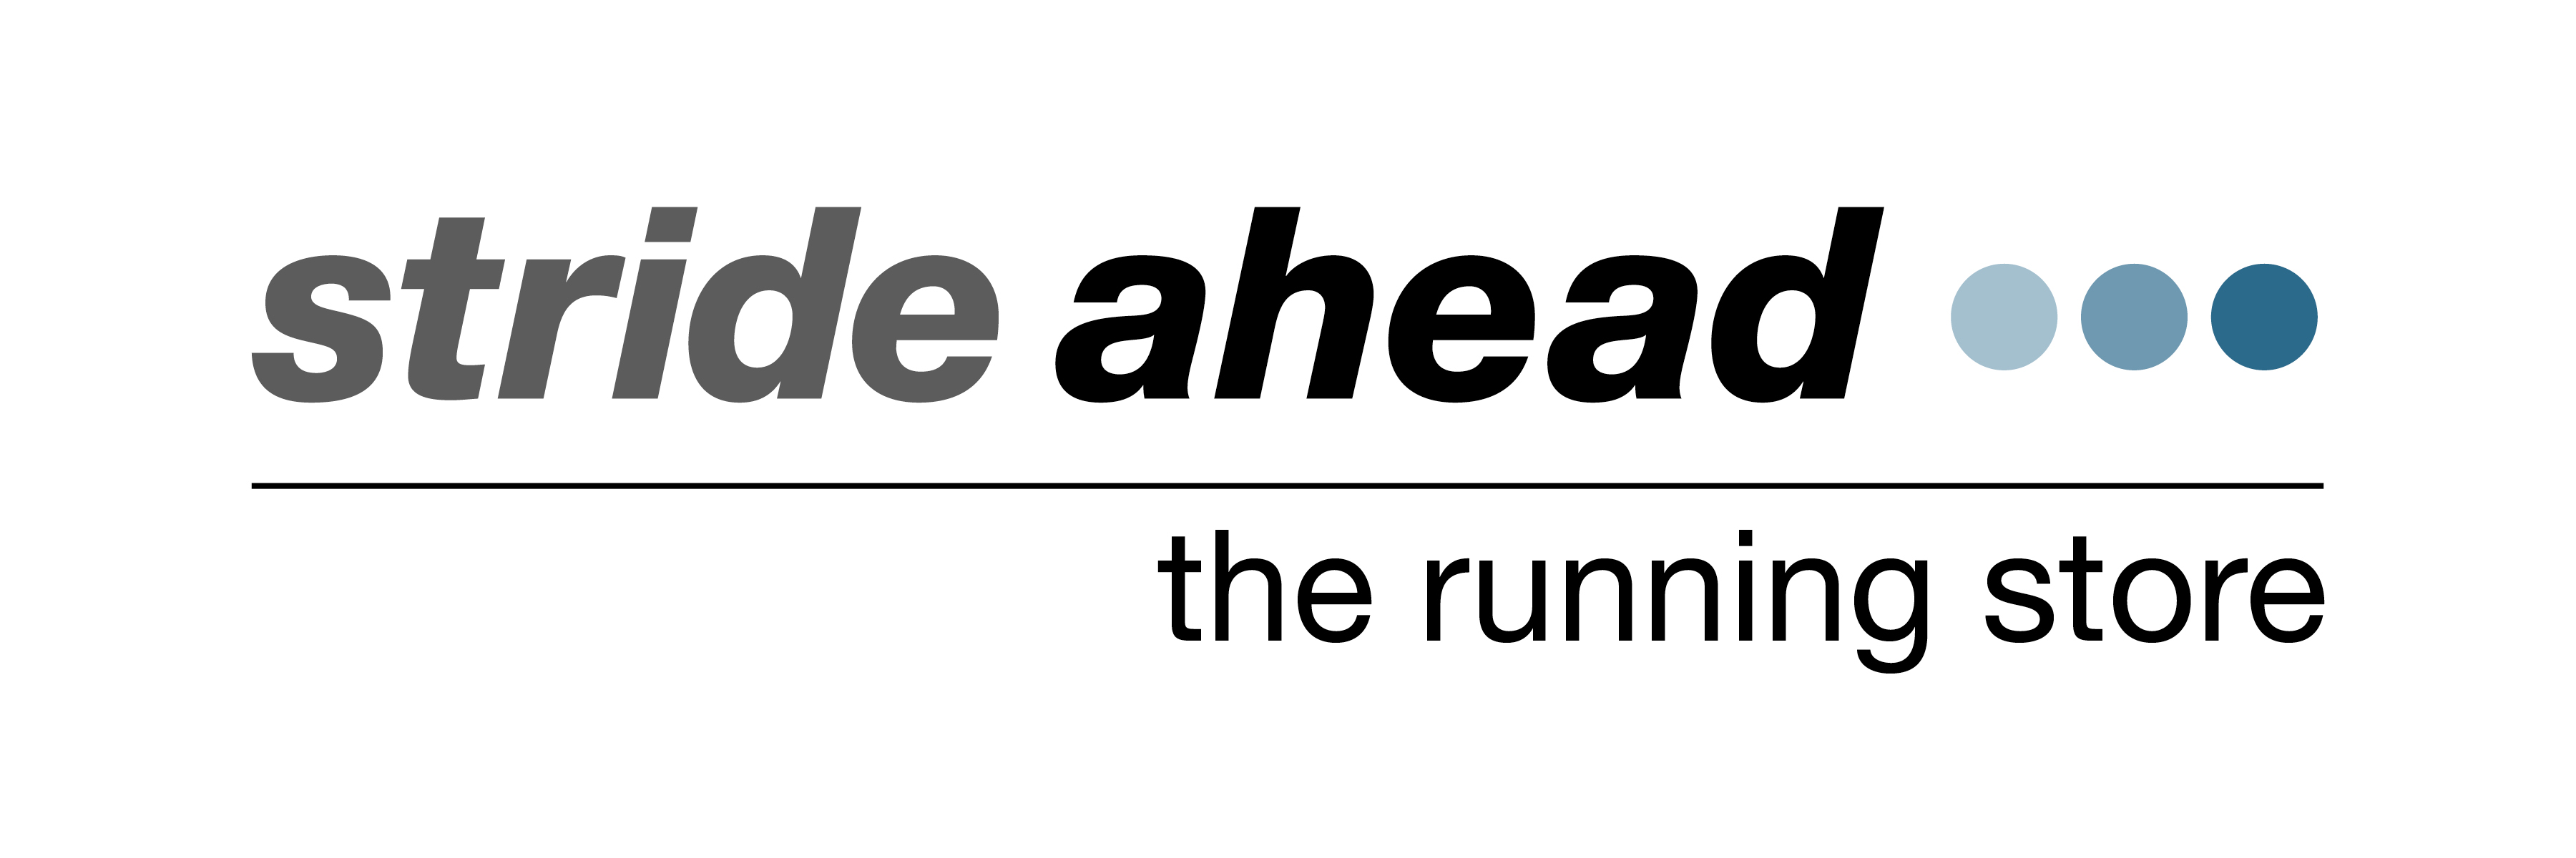 2016 Stride Ahead logo